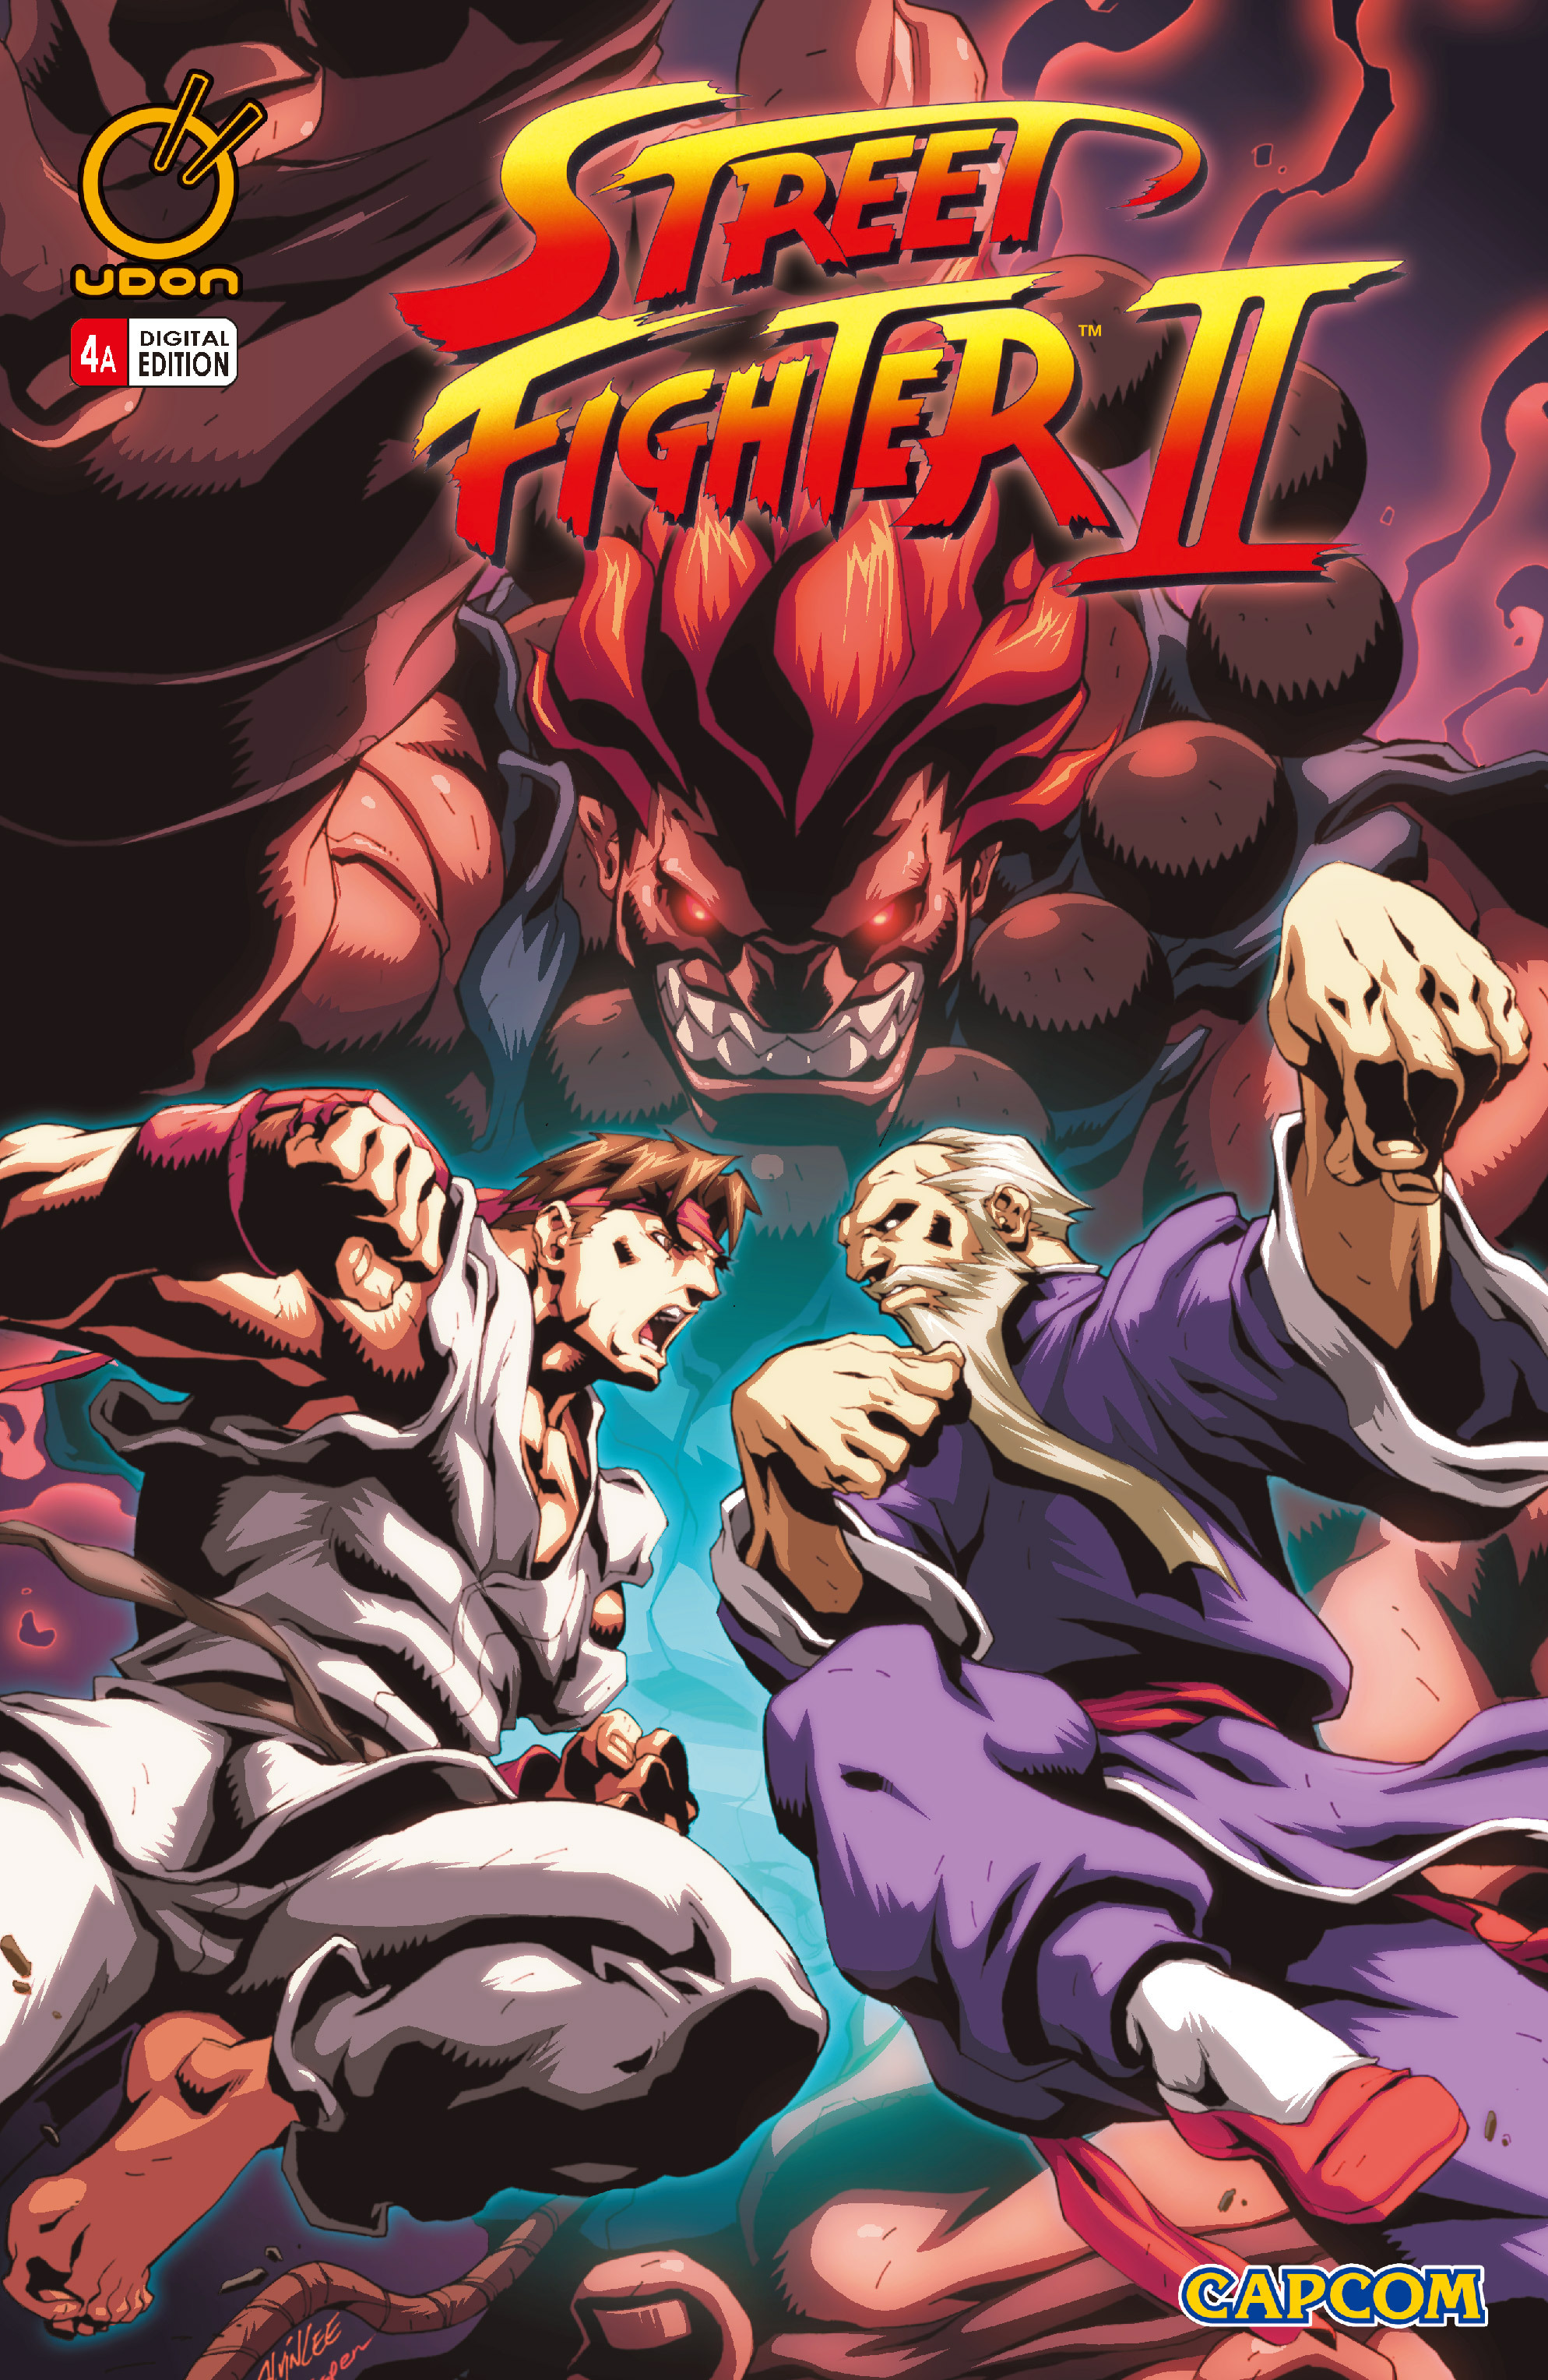 Street Fighter II chap 4 pic 1